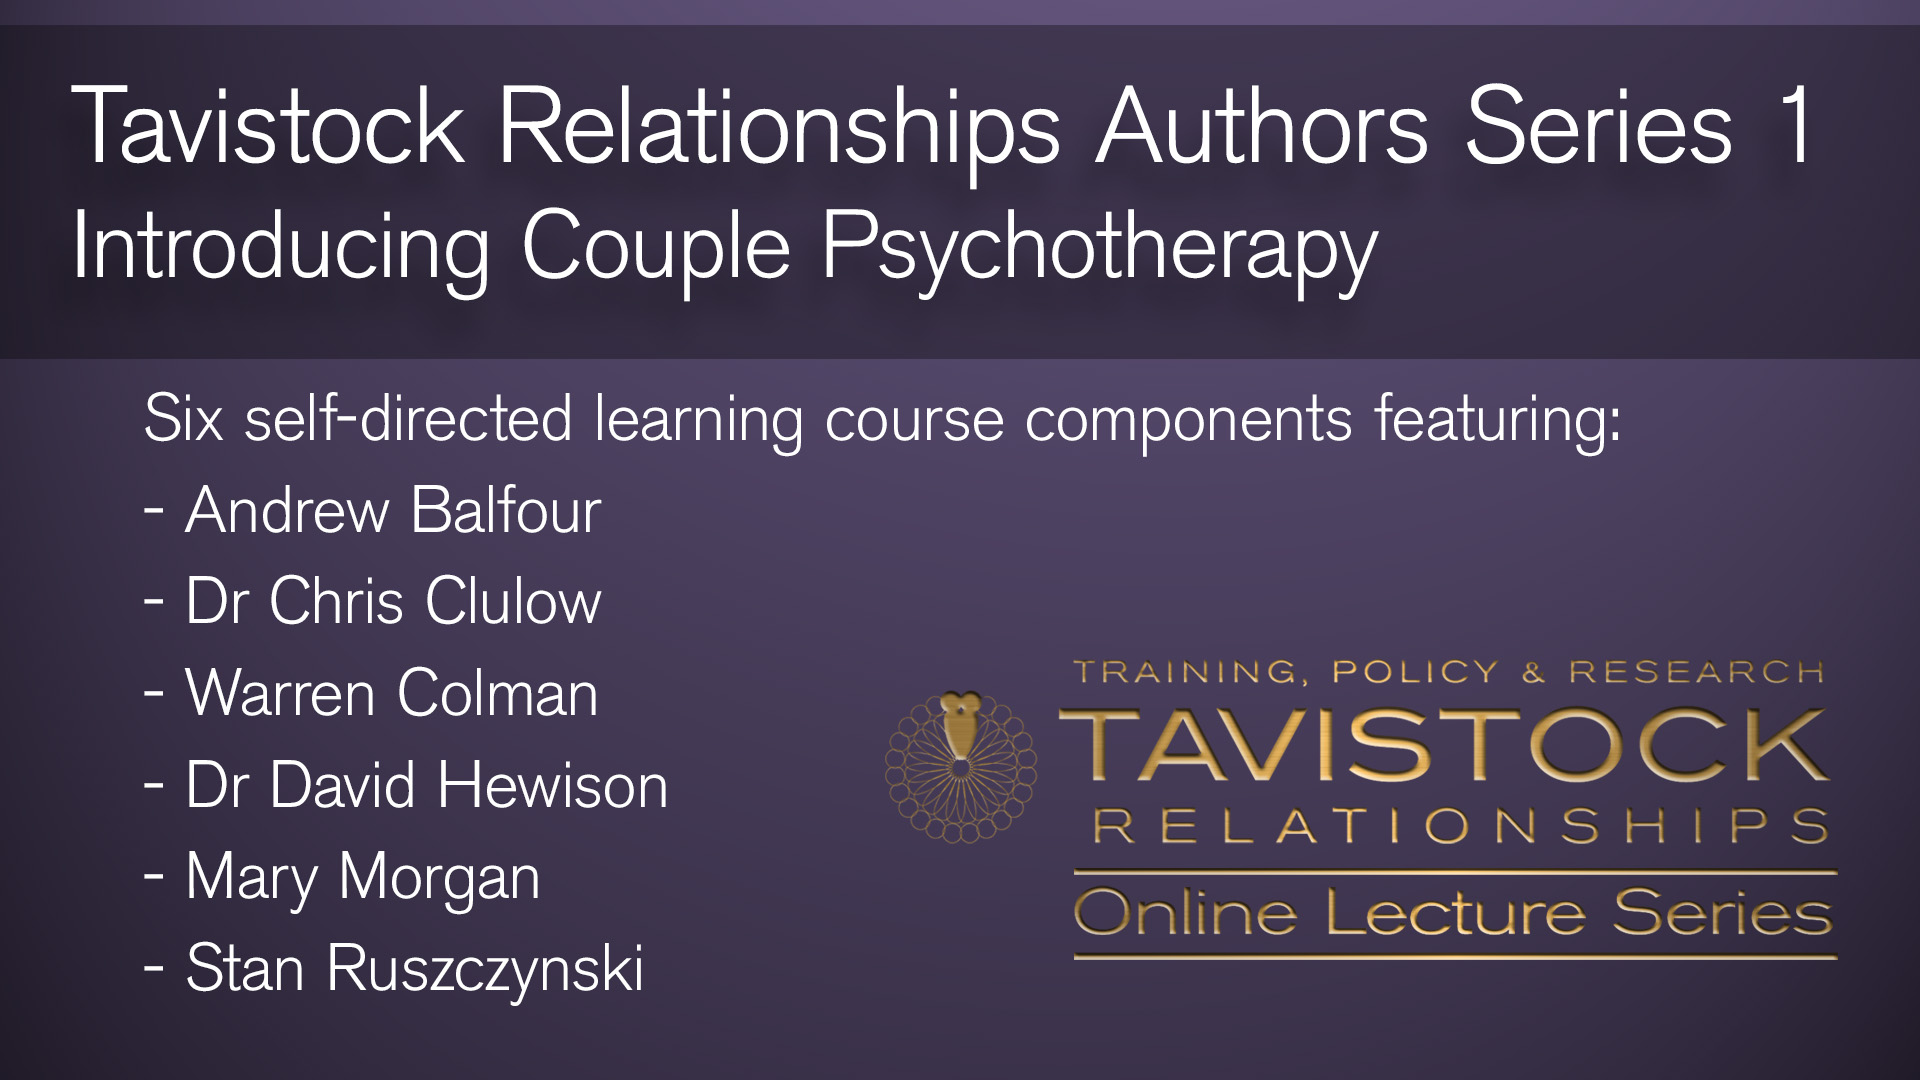 Tavistock Relationships Authors Series 1 Course Set